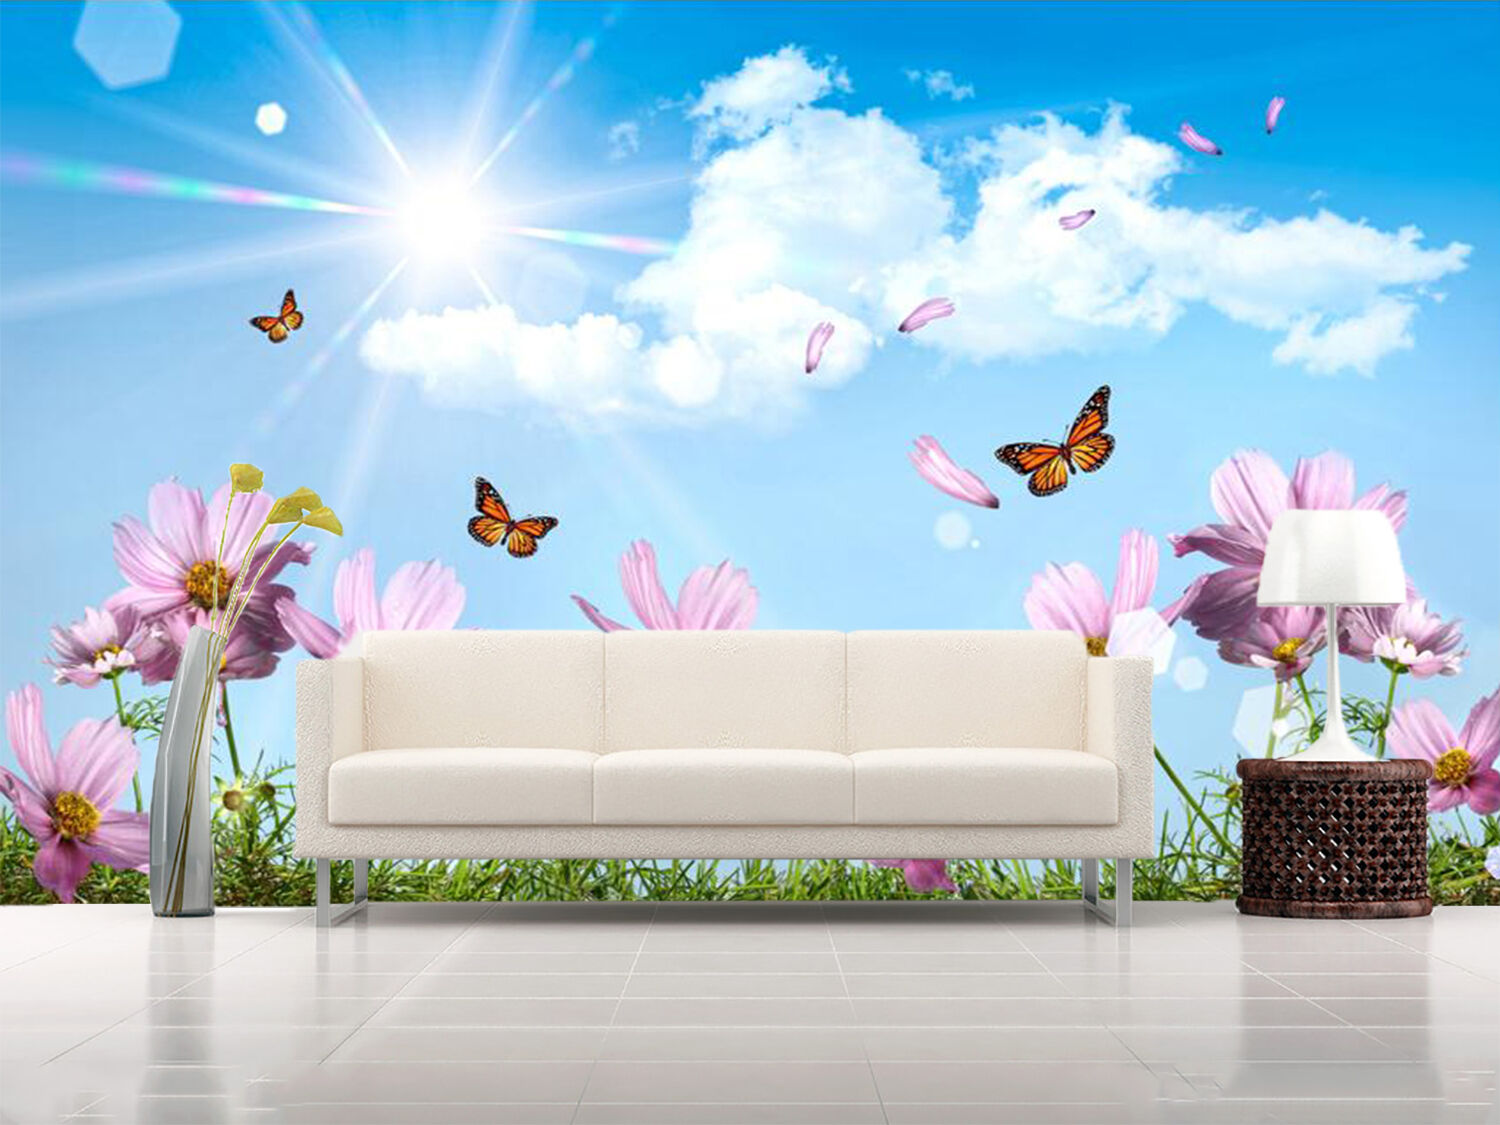 3D bluee Sky Butterfly Flower 2 Wall Paper Wall Print Decal Wall Deco Indoor Wall